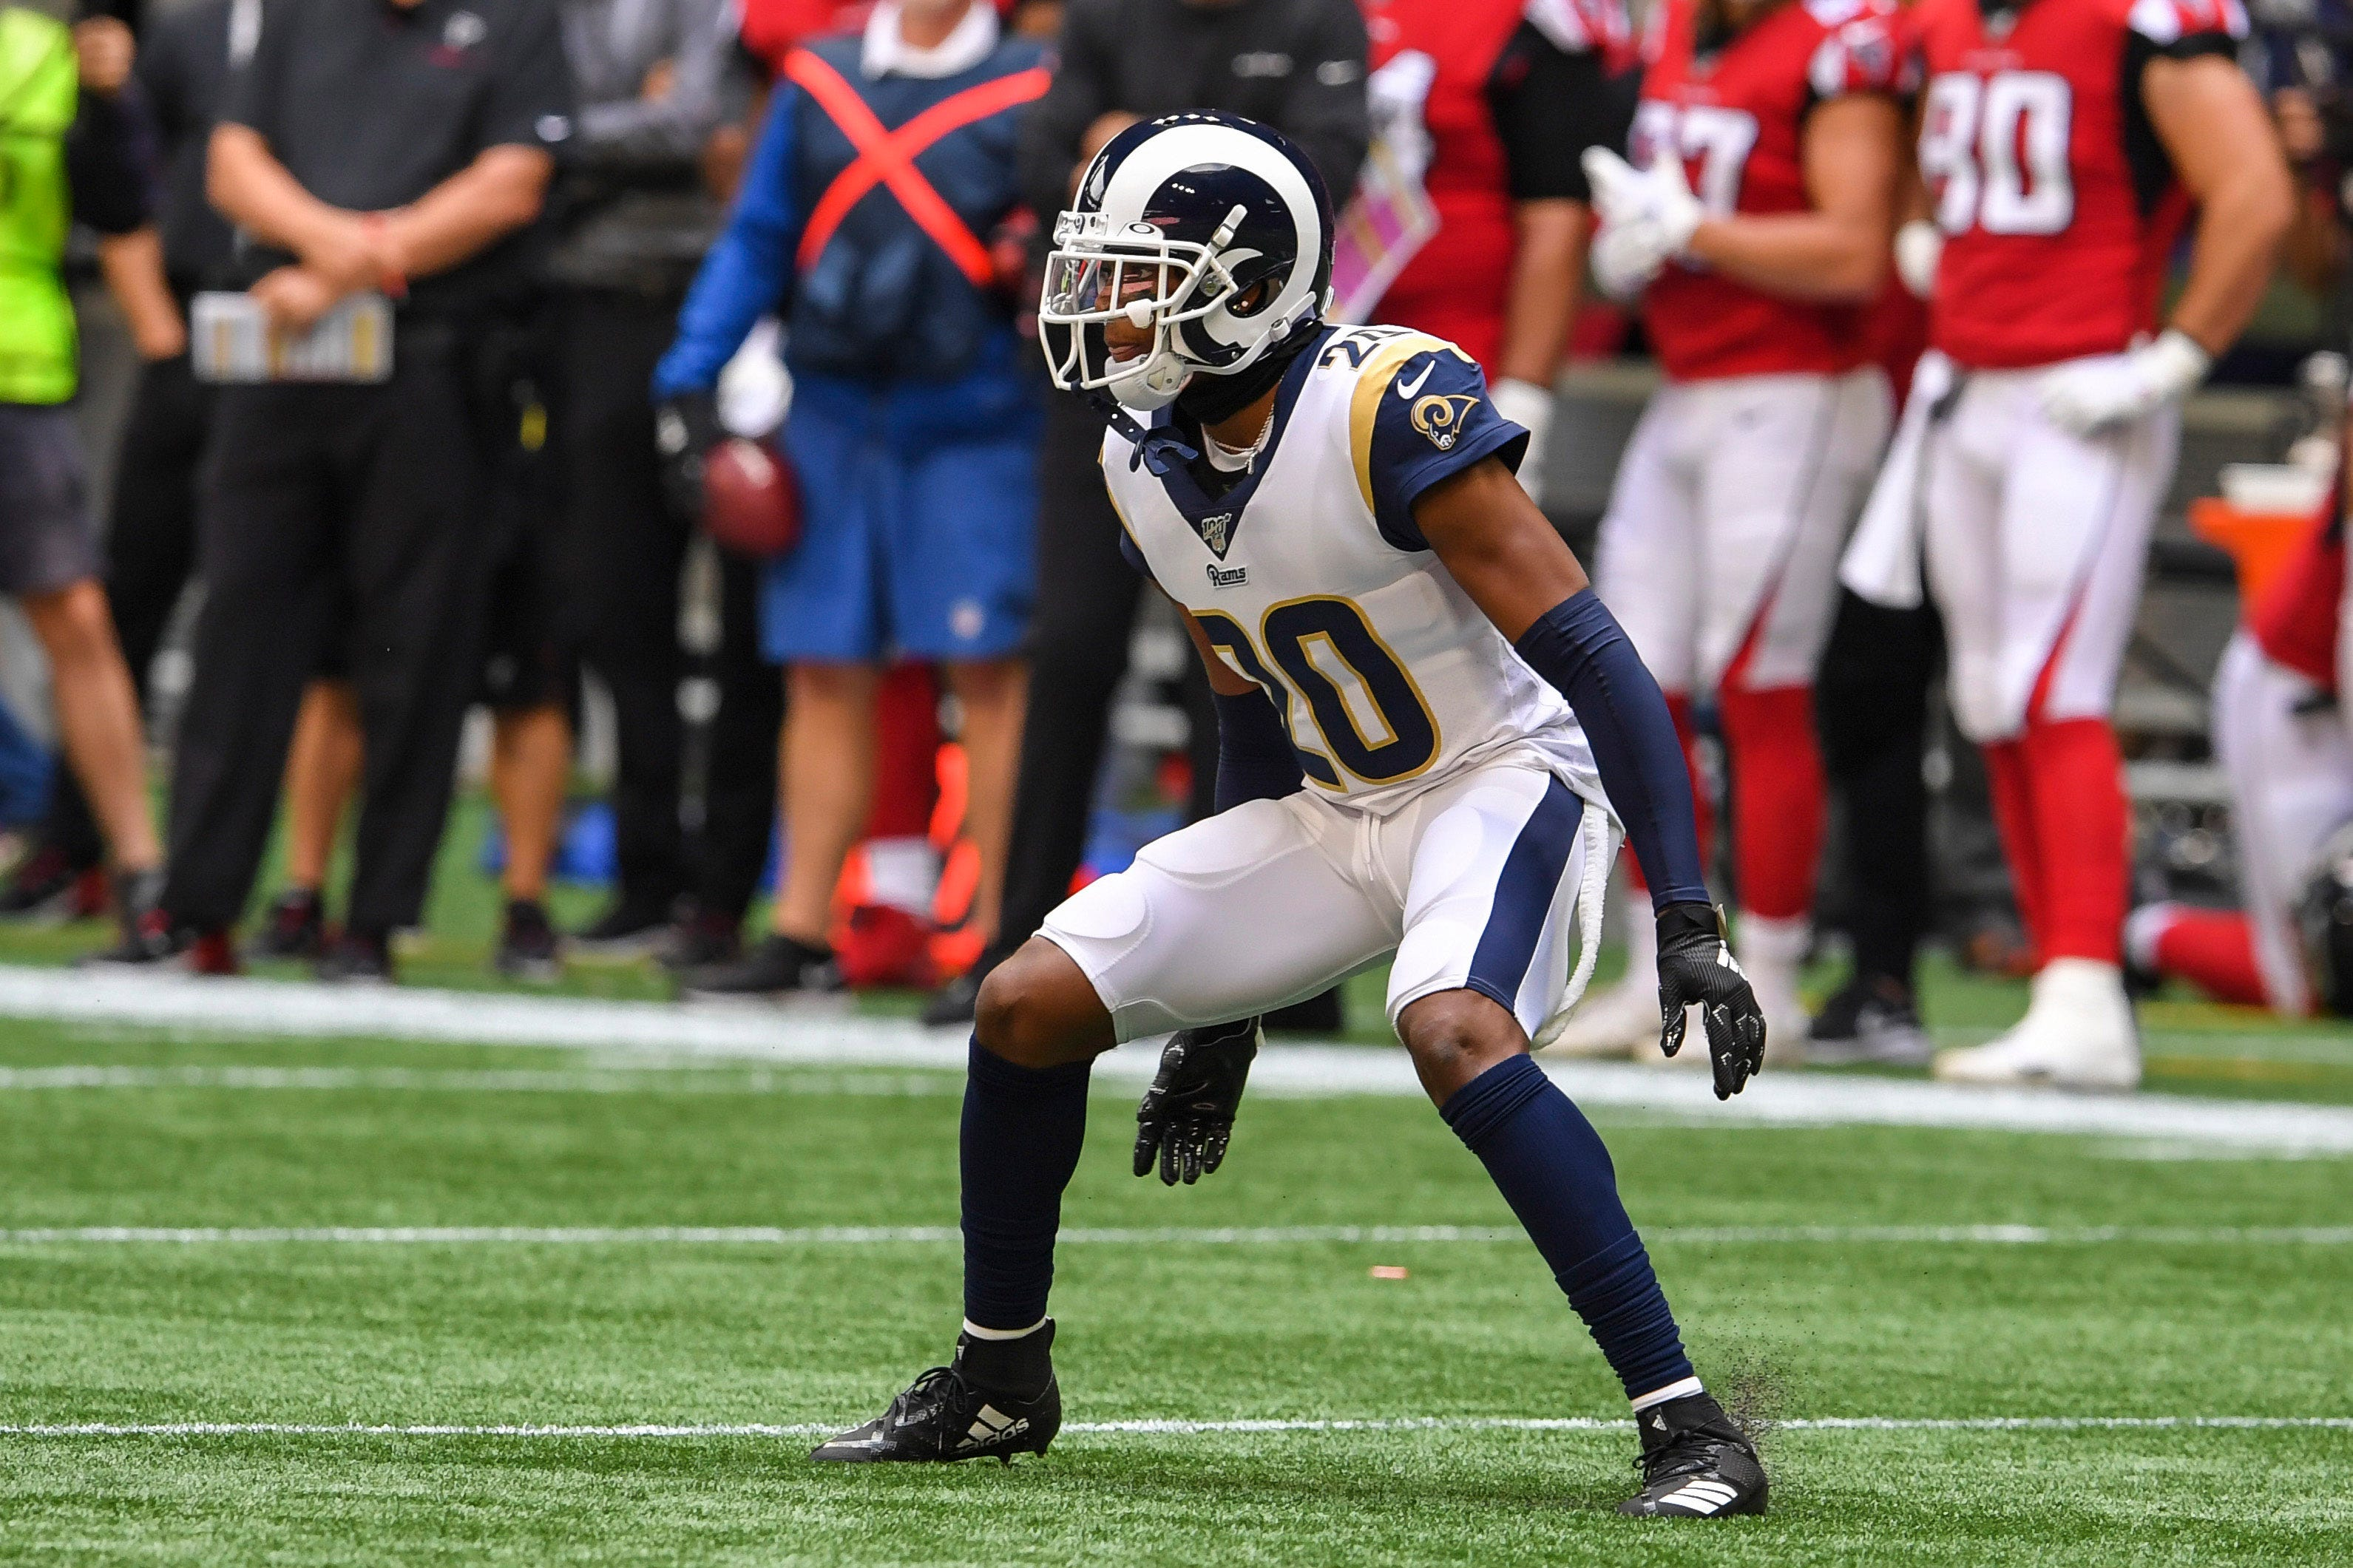 Rams rout reeling Falcons in Jalen Ramseys first game after trade